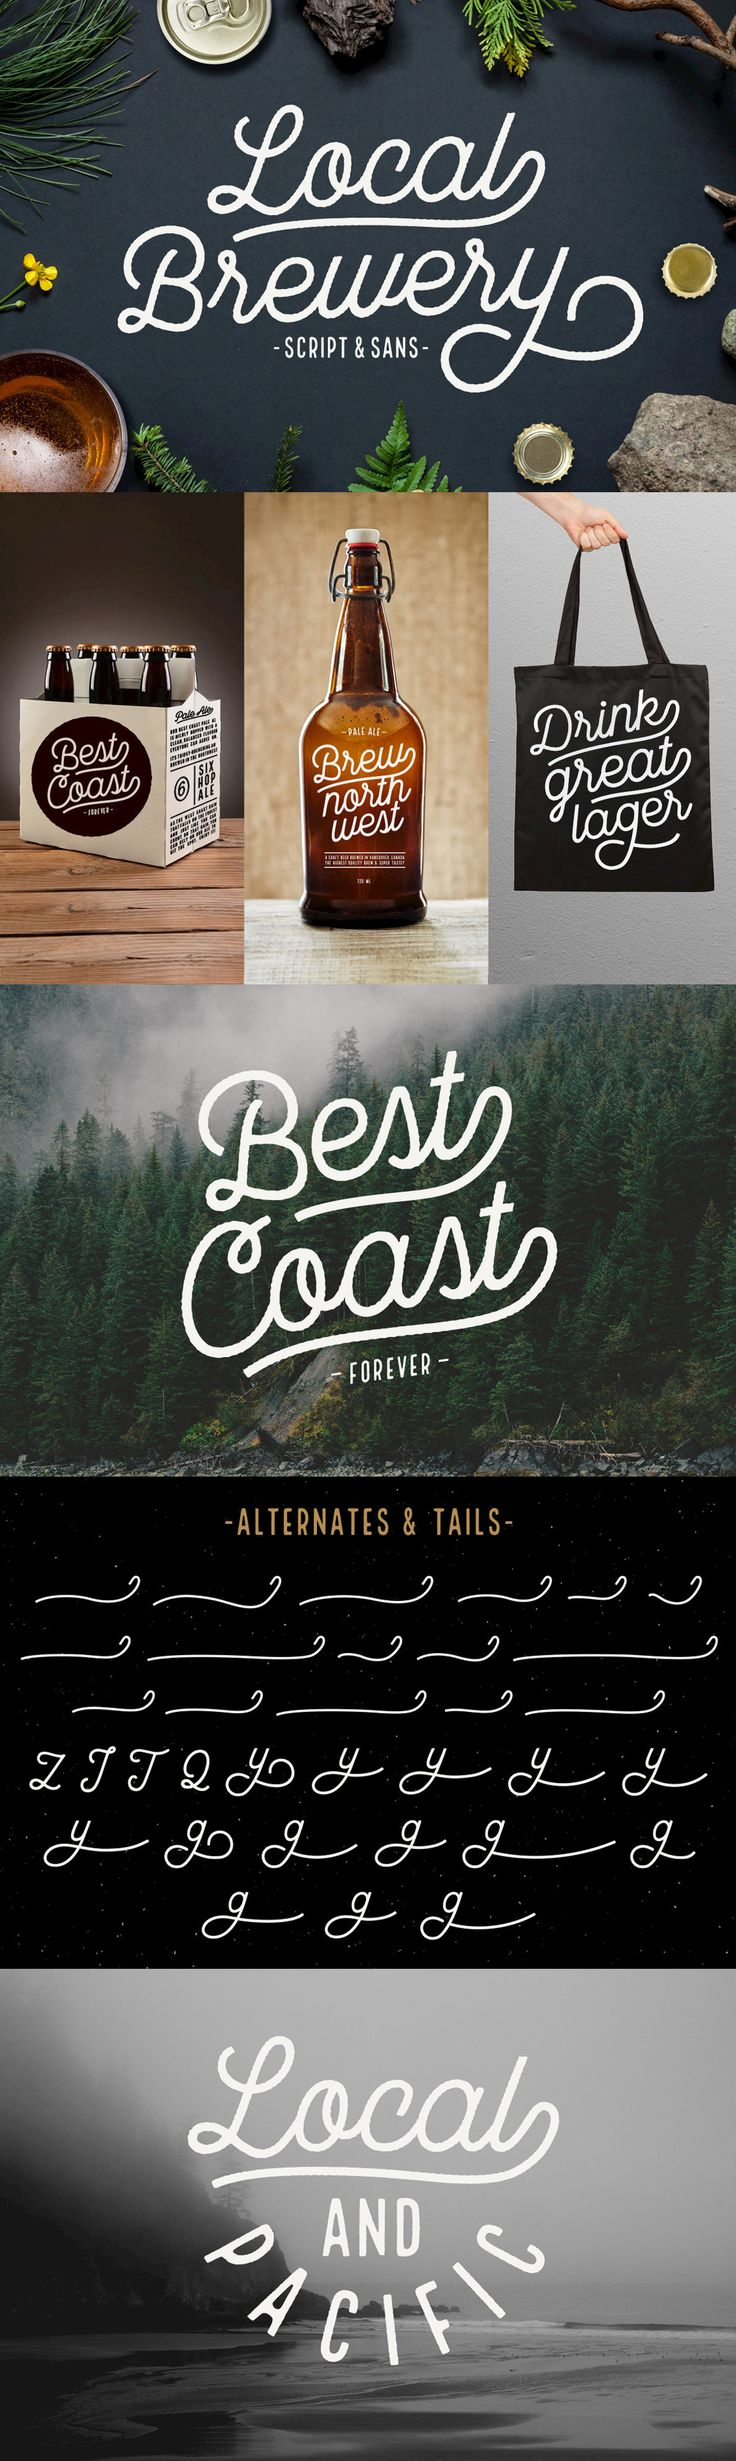 Local Brewery - Local Brewery is a vintage inspired font collection that includes six script styles and two...